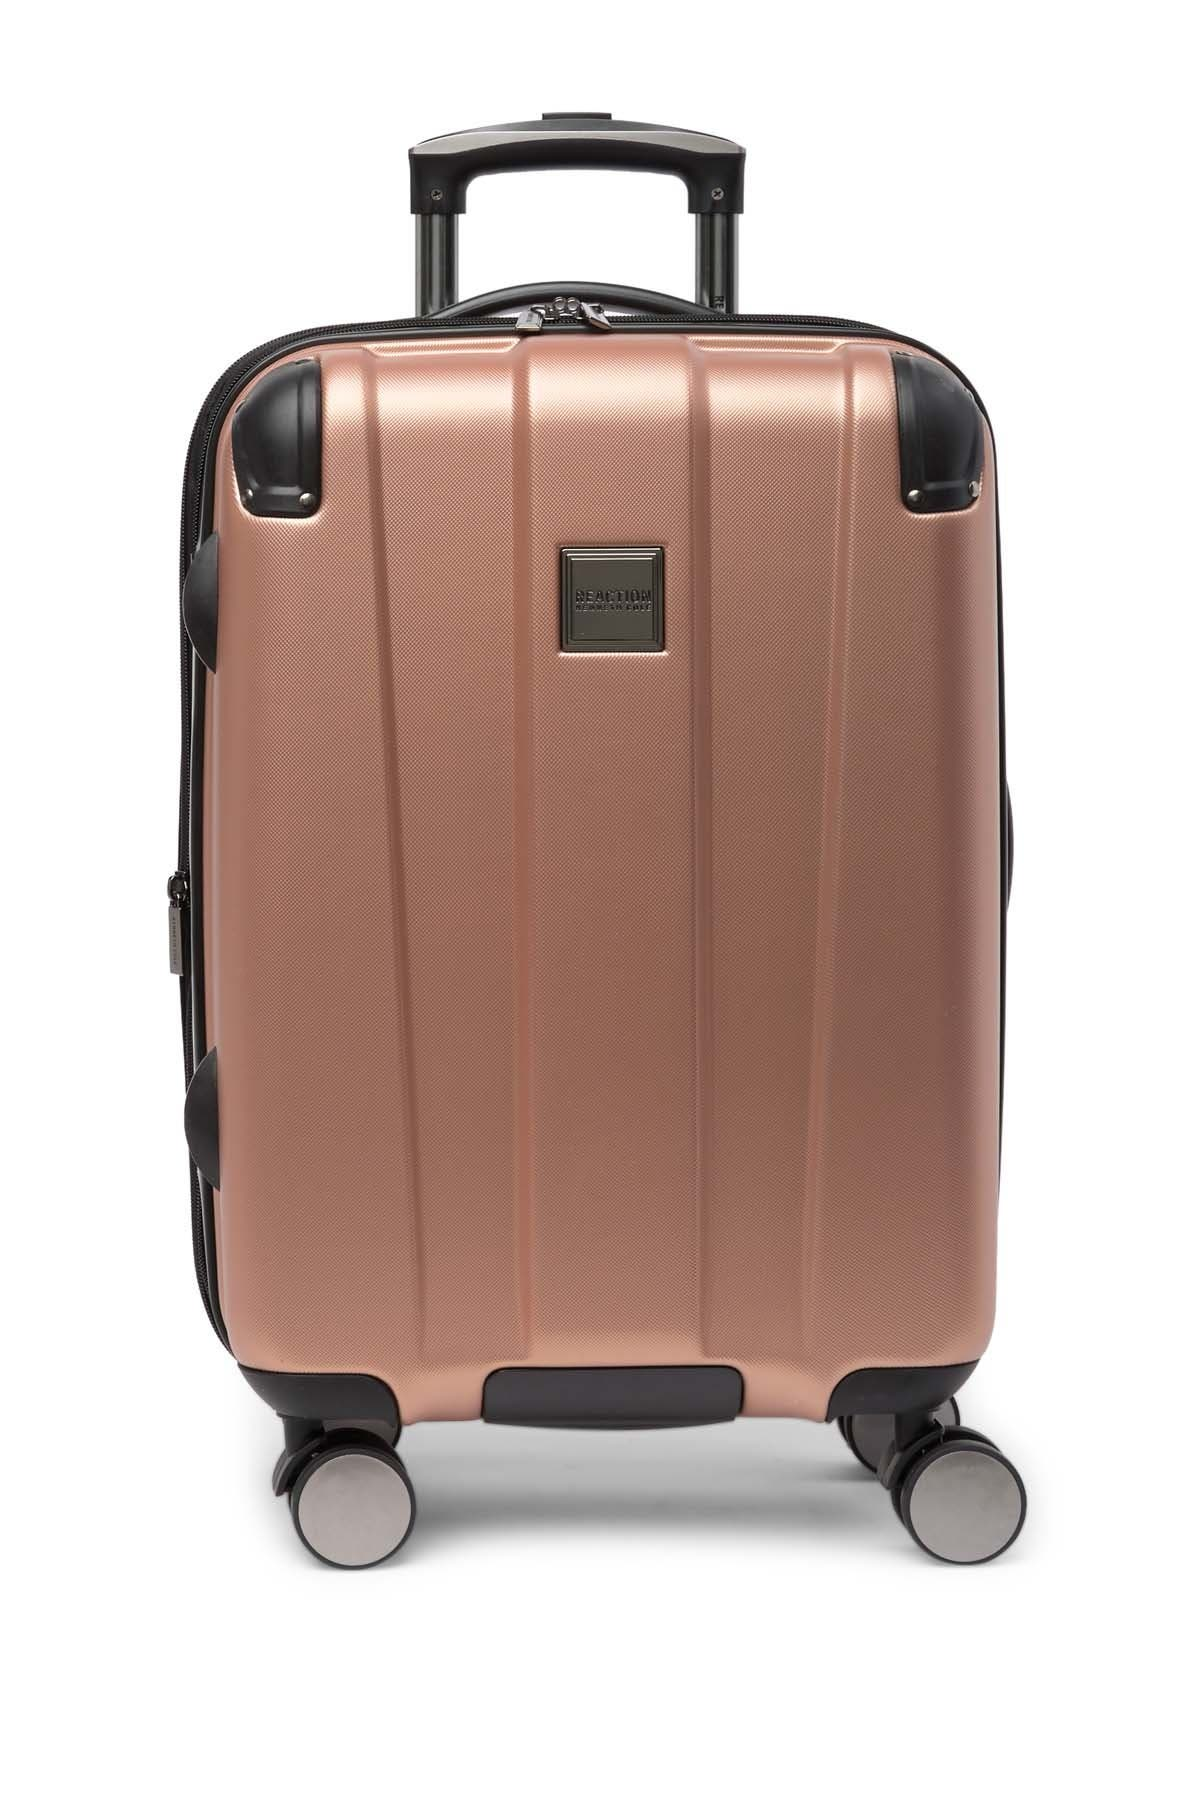 "Image of HERITAGE TRAVELWARE Continuum 20"" Carry-On Spinner"